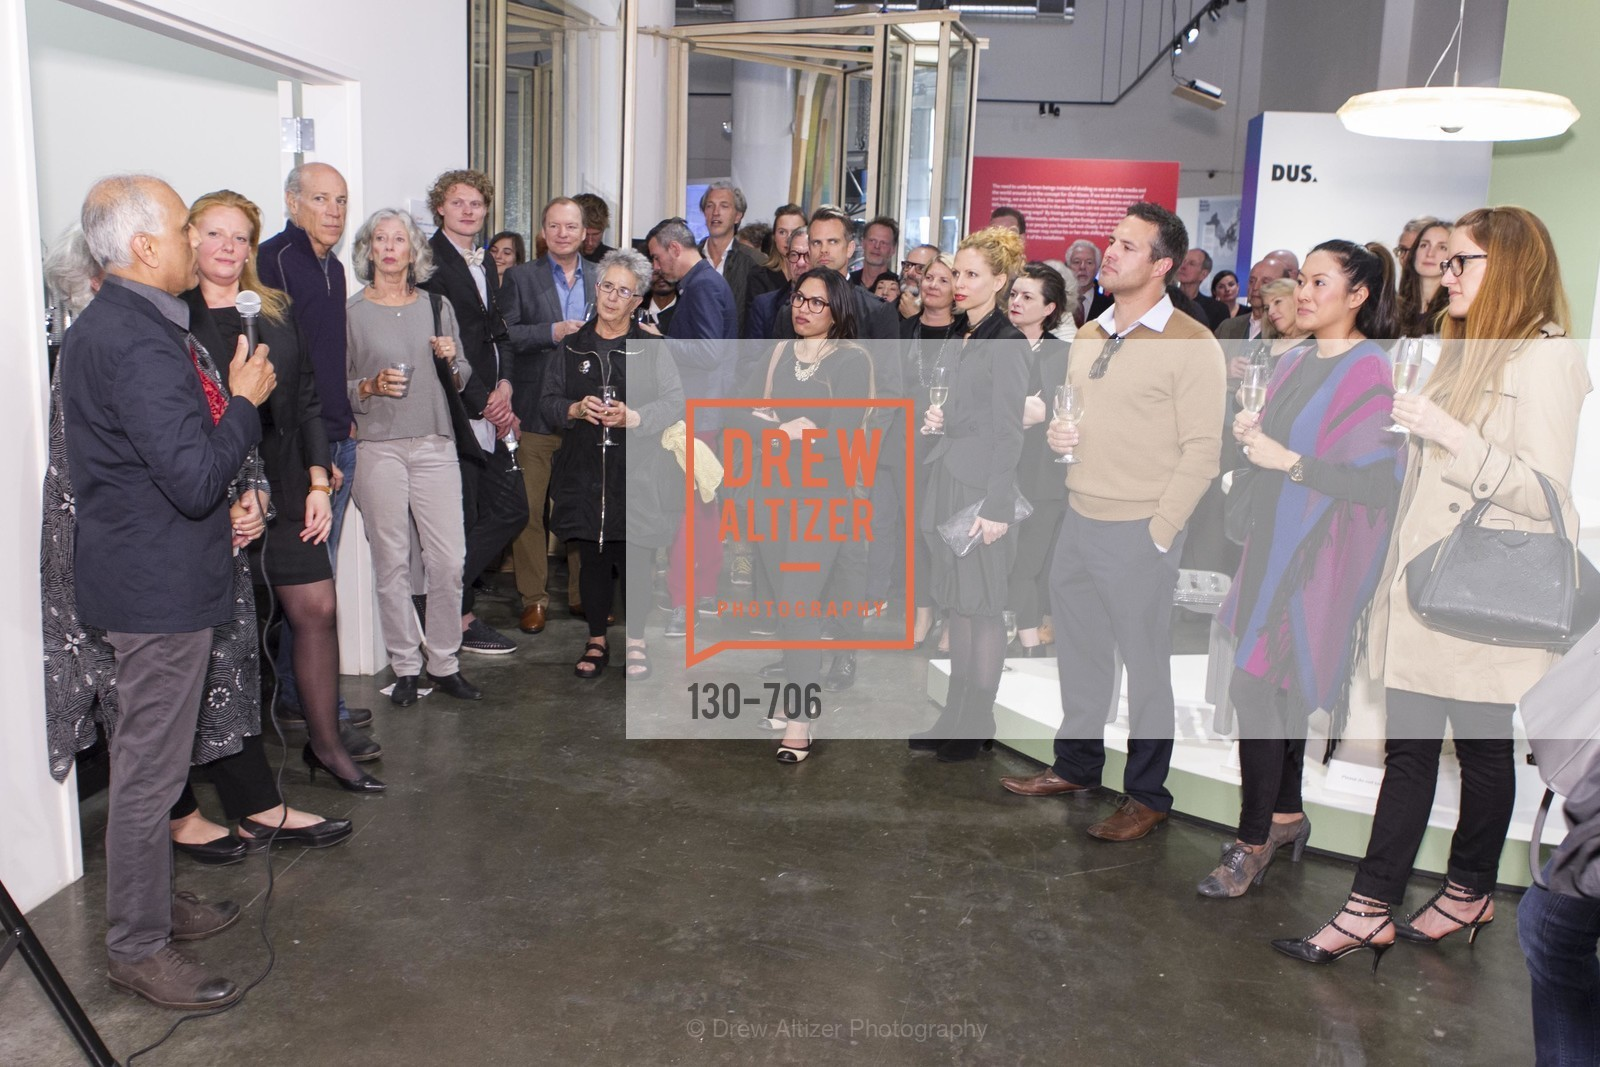 Zahid Sardar, Exhibit Opening at the MUSEUM OF CRAFT AND DESIGN - Hands Off: New Dutch Design at the Confluence of Technology & Craft, US, May 7th, 2015,Drew Altizer, Drew Altizer Photography, full-service agency, private events, San Francisco photographer, photographer california